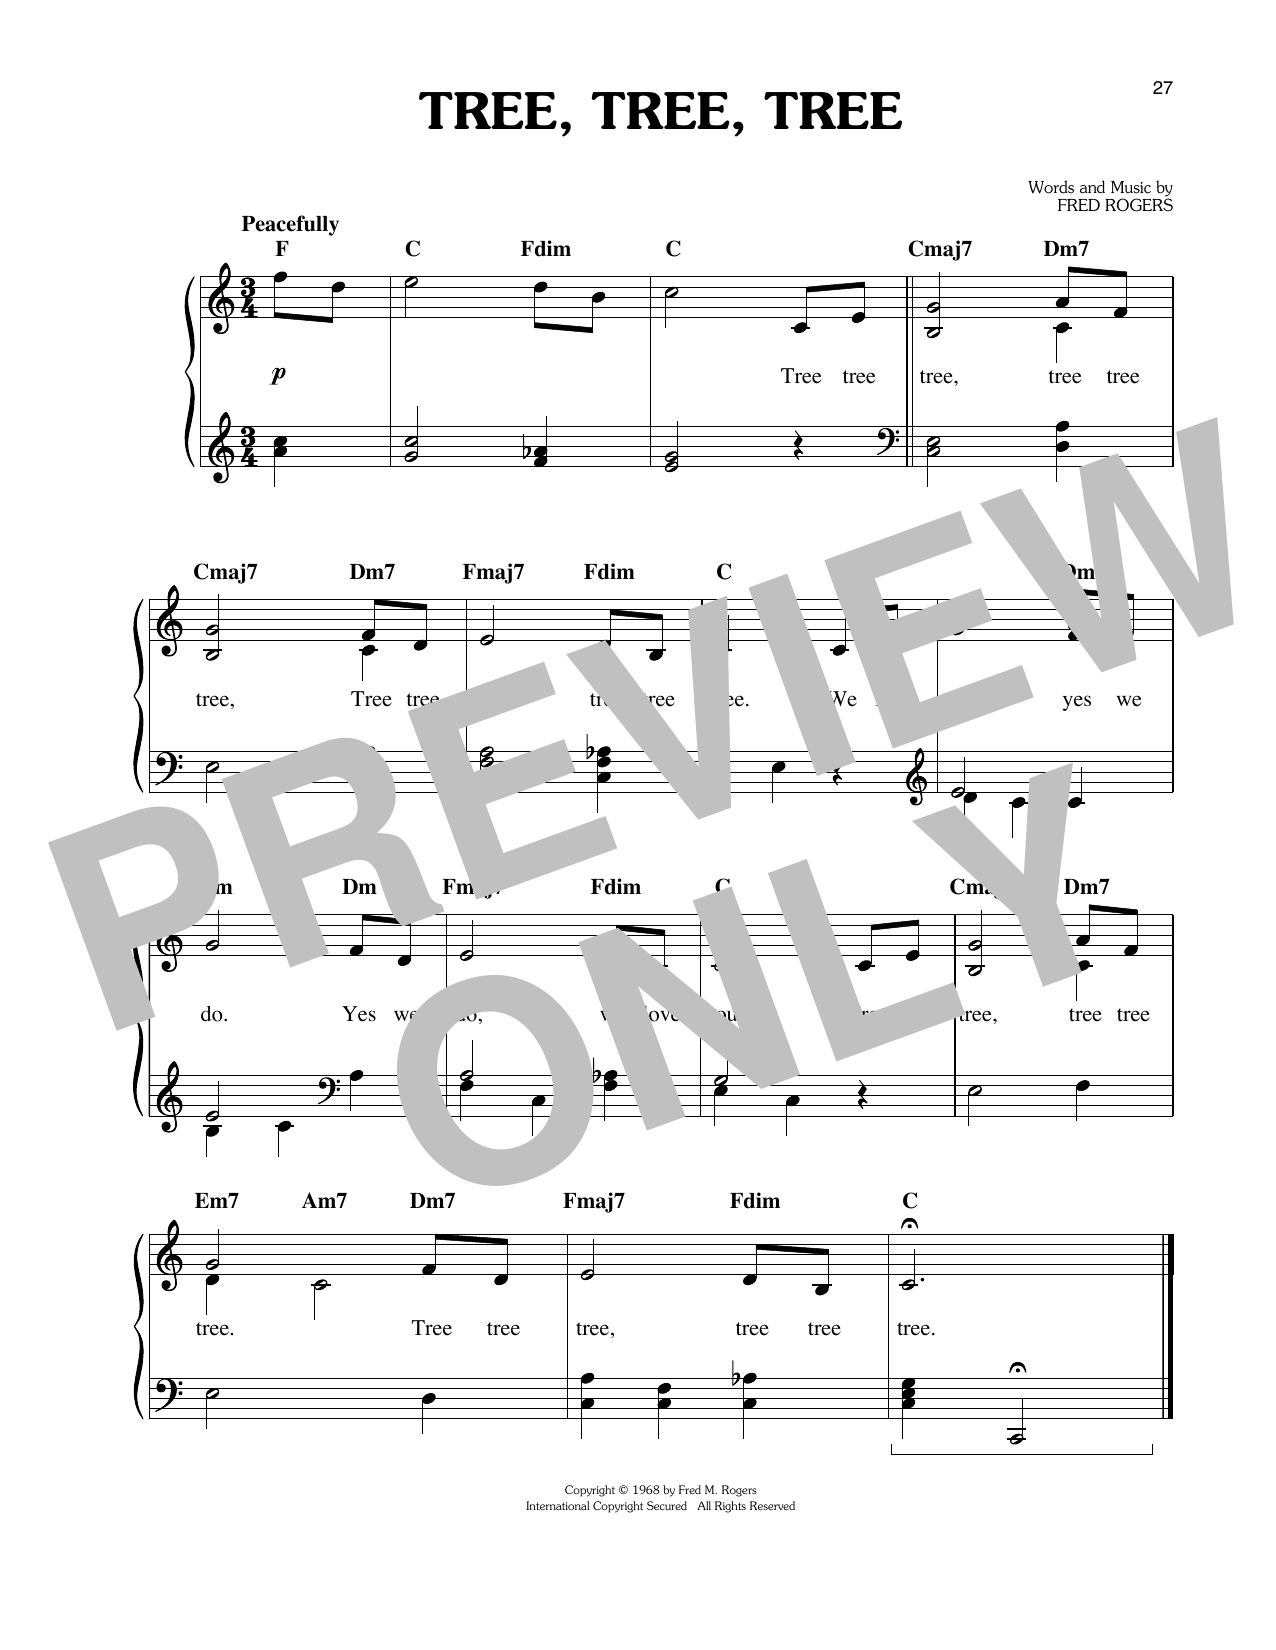 Fred Rogers Tree, Tree, Tree sheet music notes and chords. Download Printable PDF.